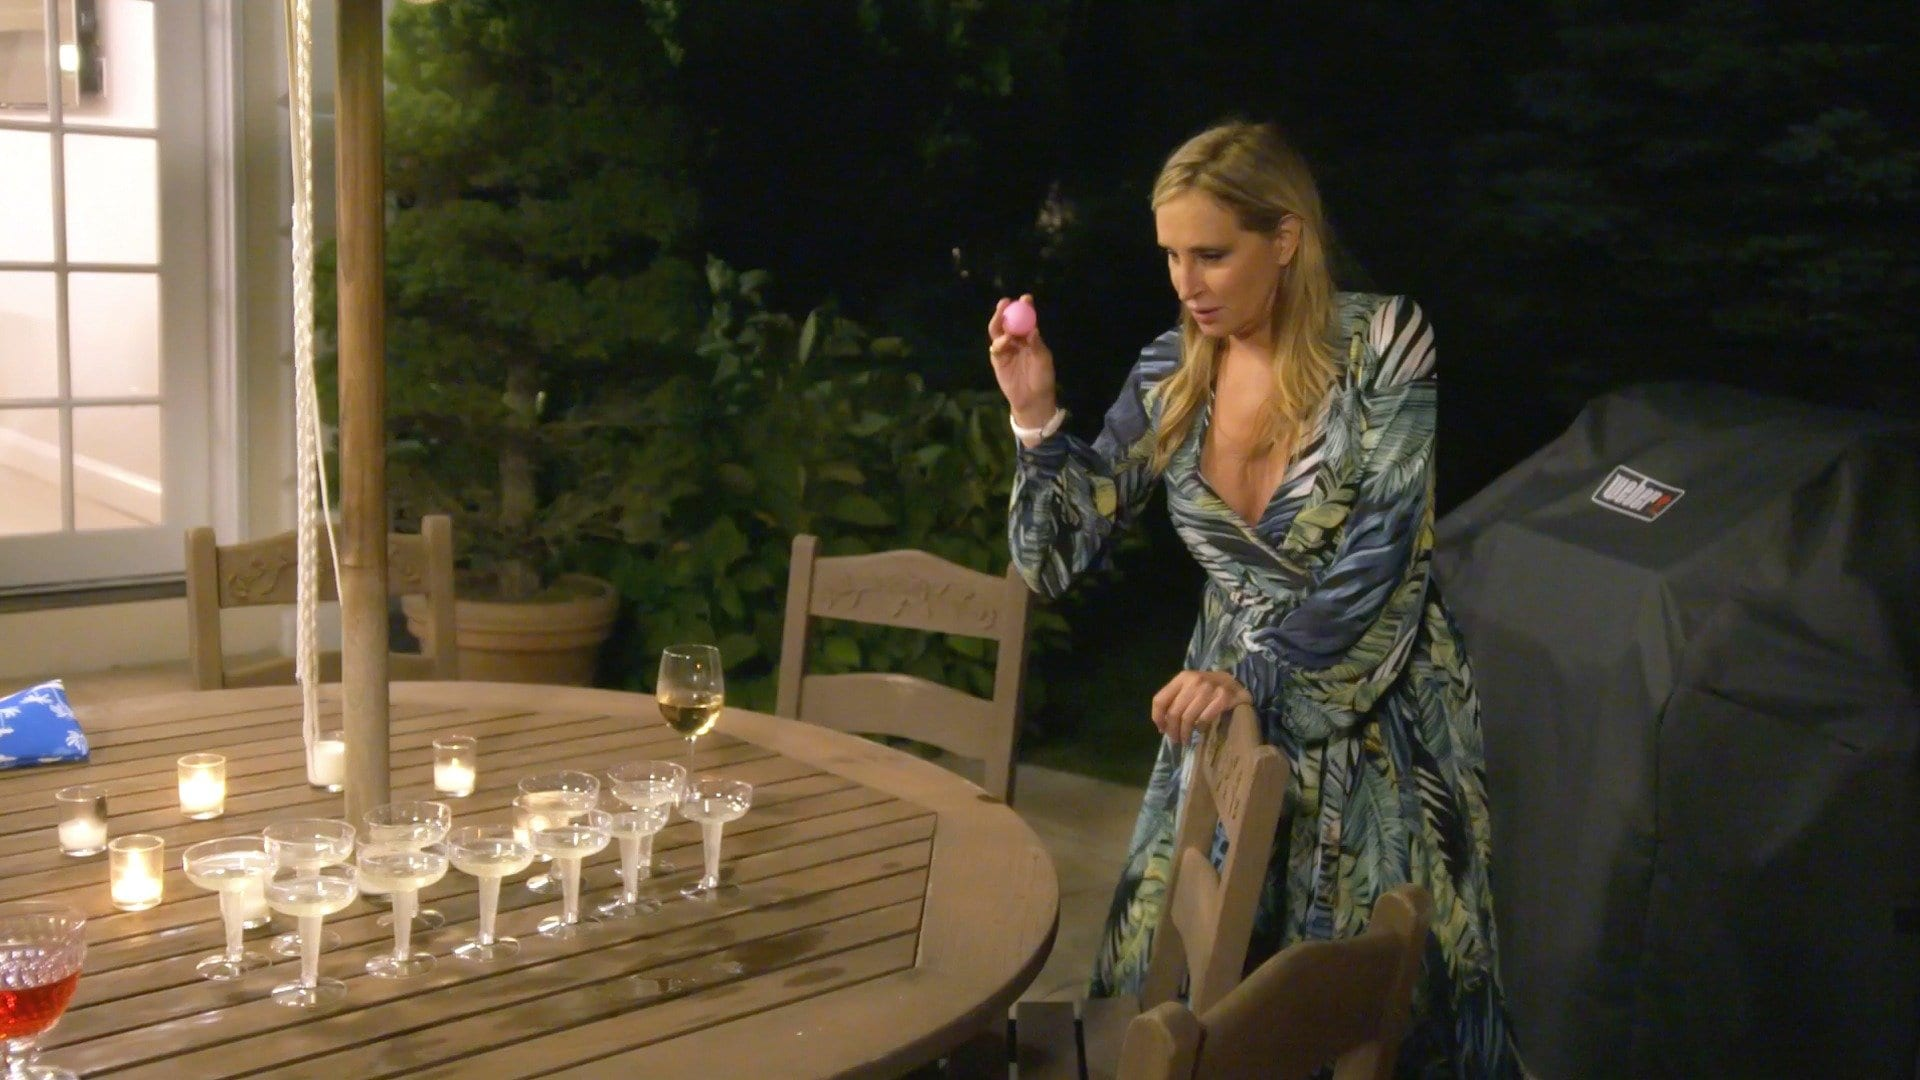 Ain't No Party Like a Hamptons Party